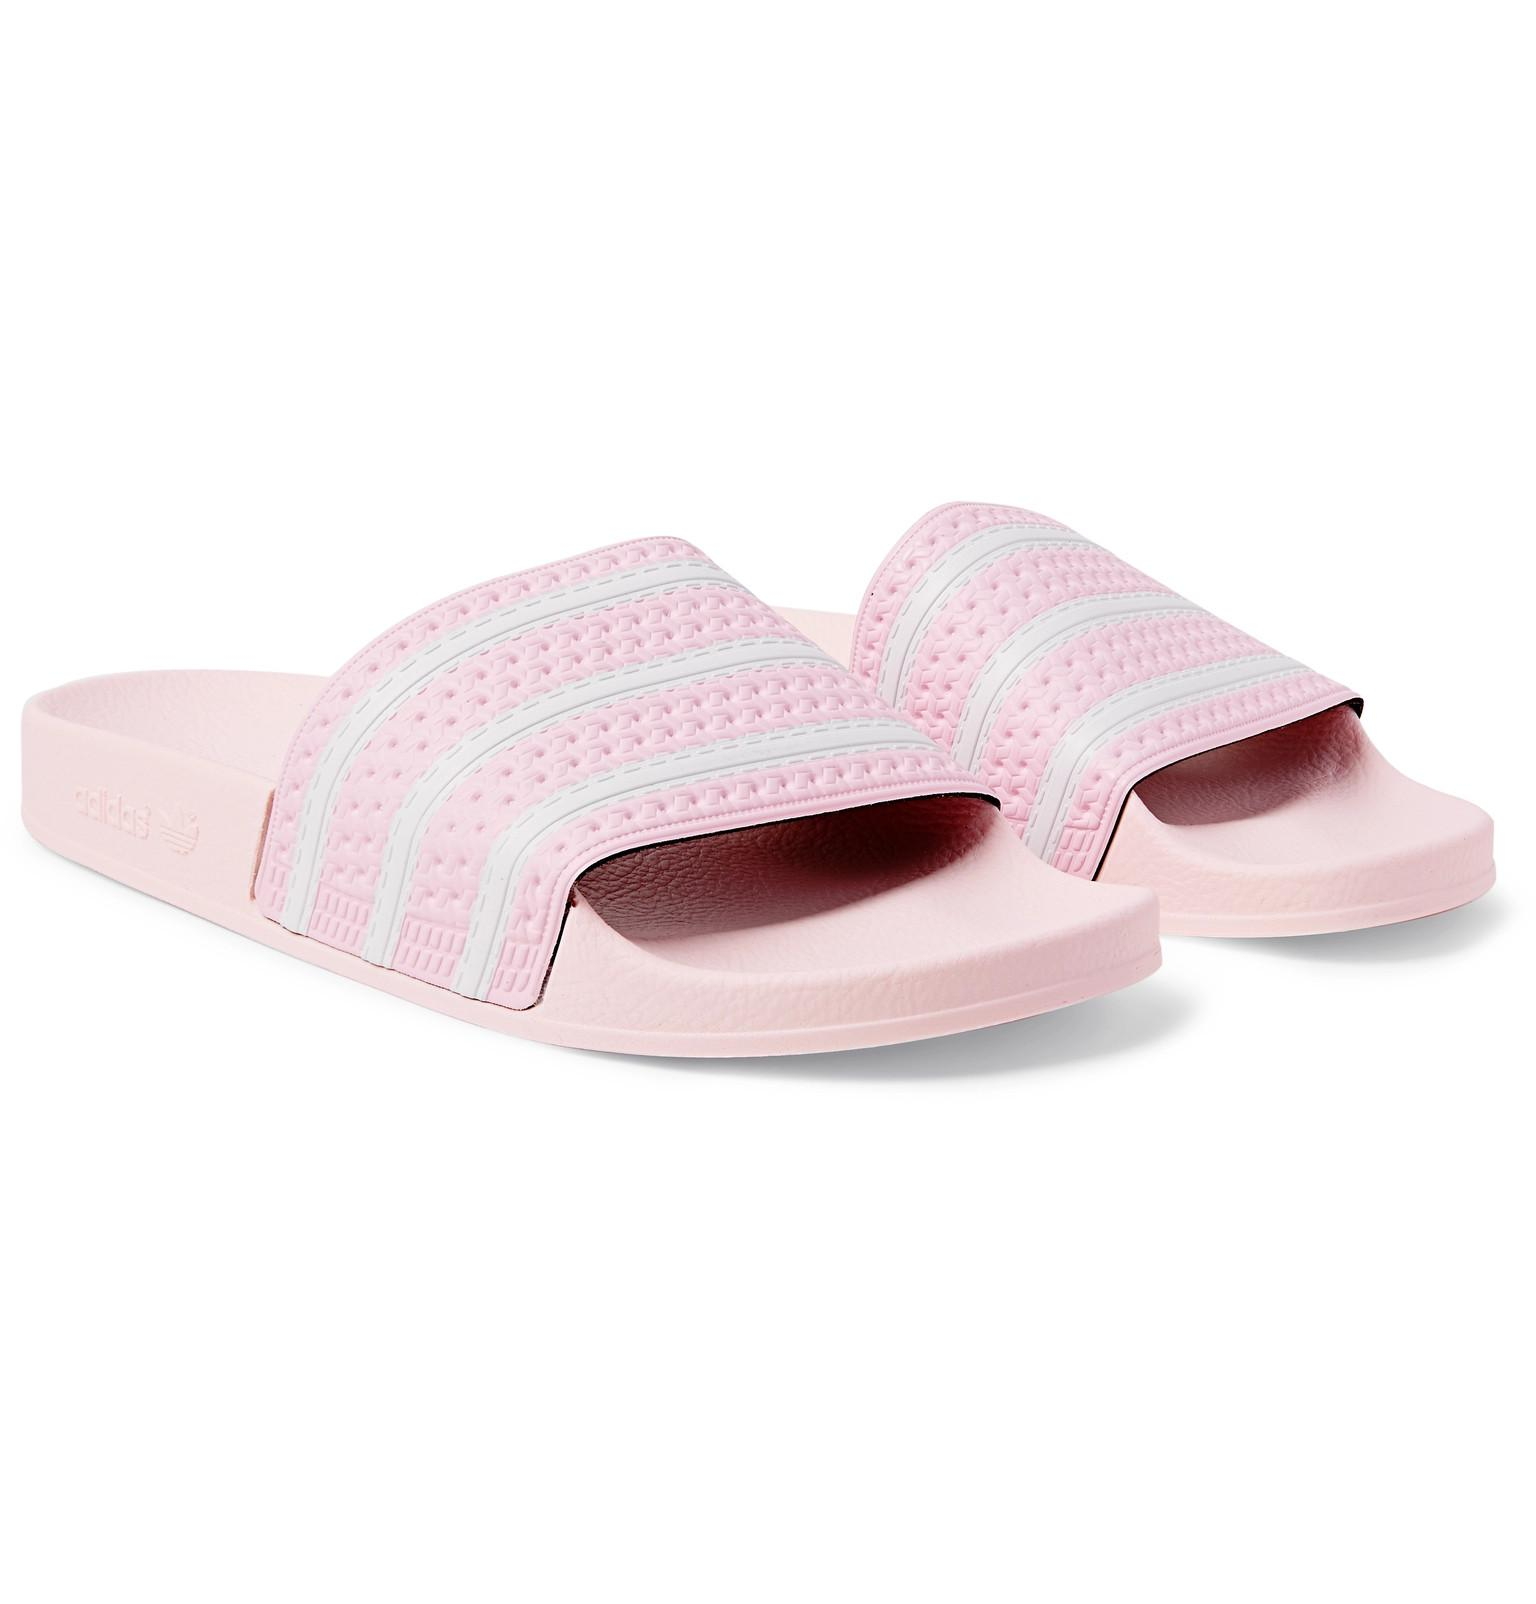 4fad90497ab1 Adidas Originals Adilette Textured-rubber Slides in Pink for Men - Lyst